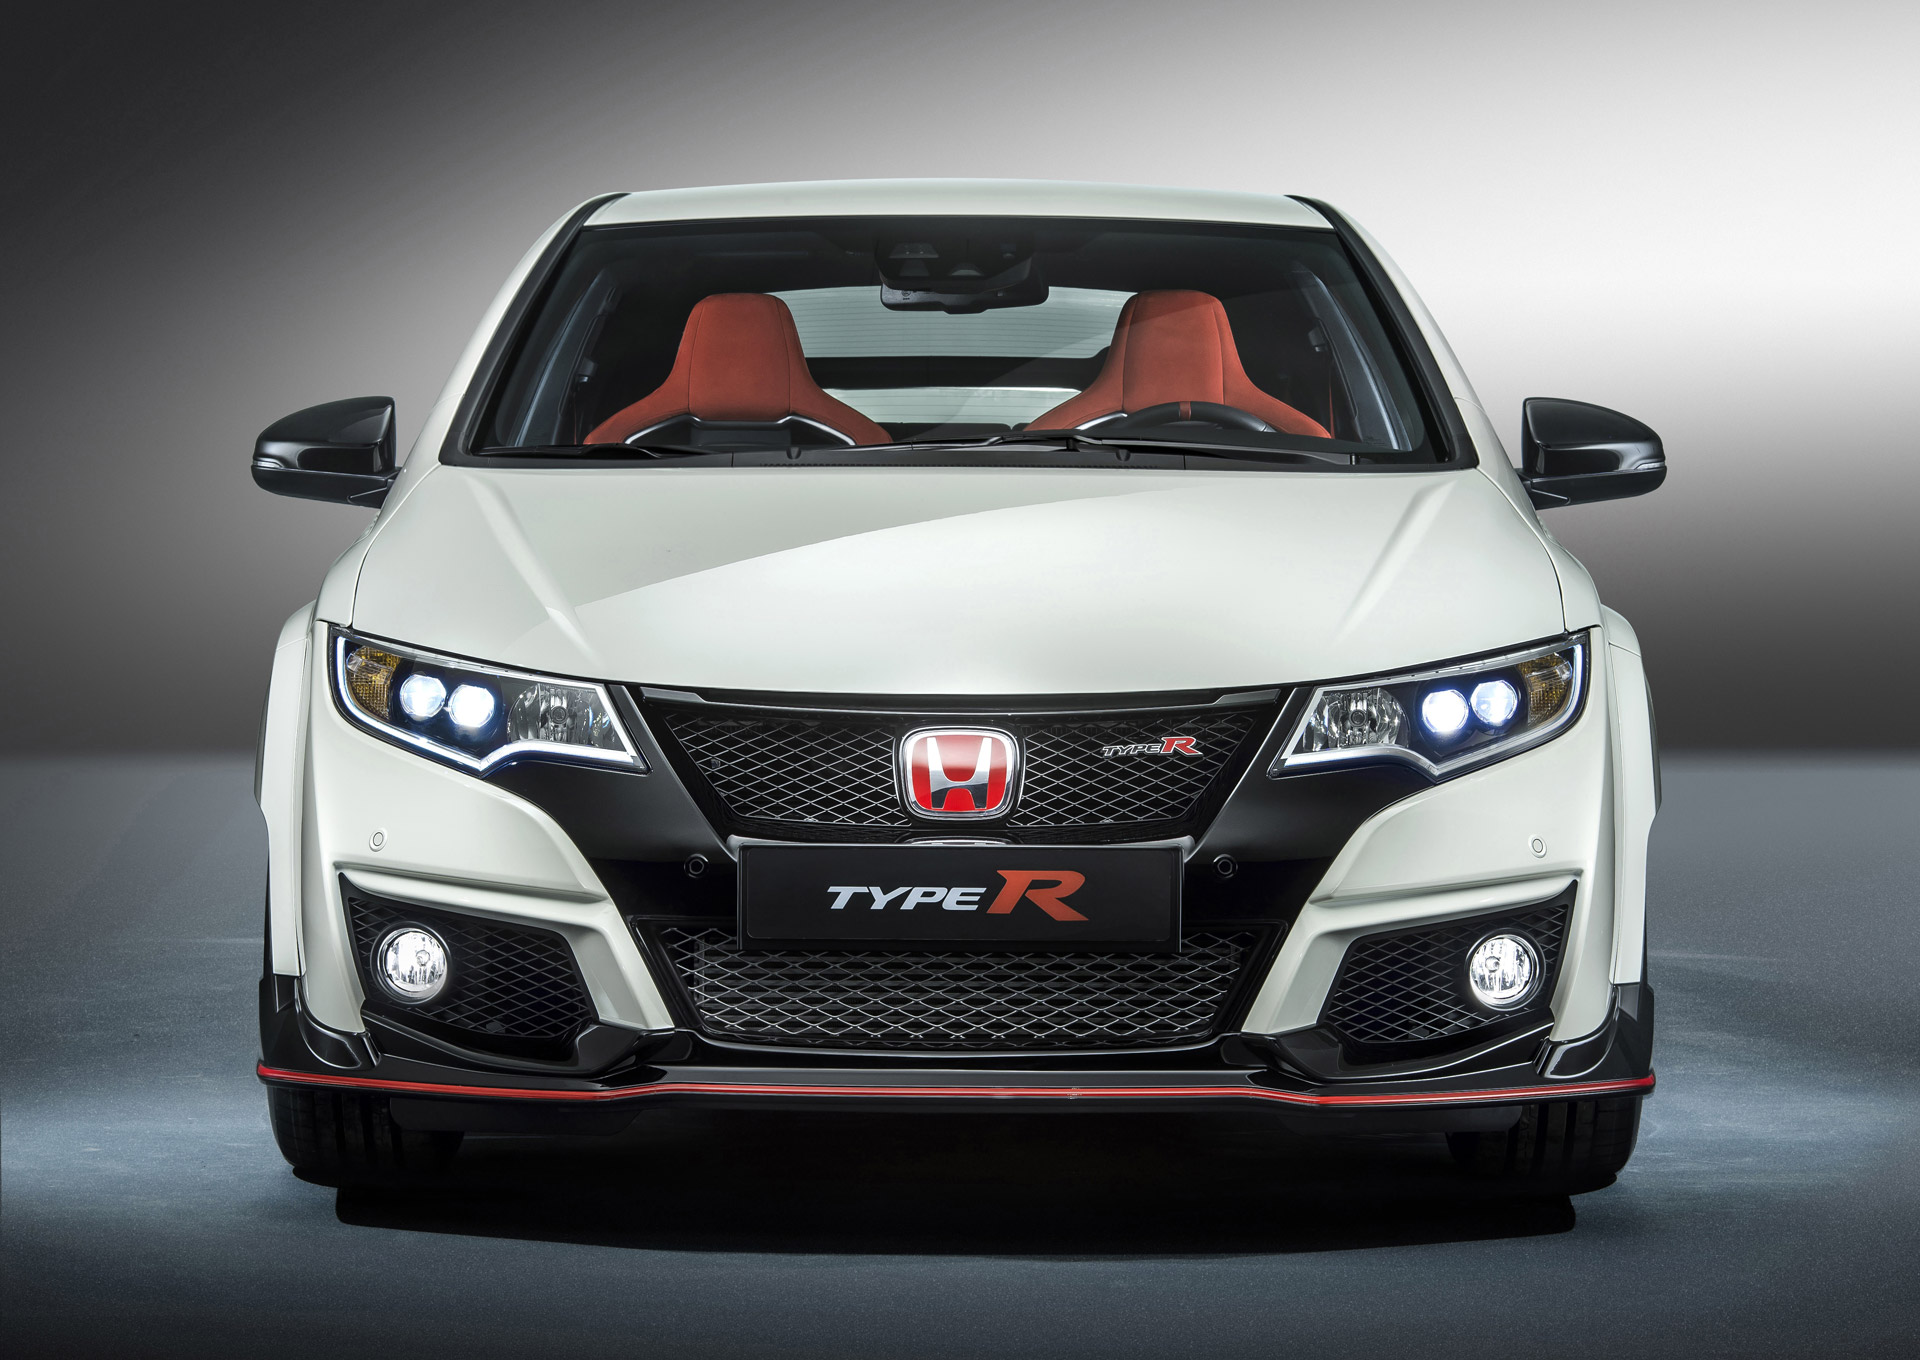 Exceptionnel 2015 Honda Civic Type R: 305 HP And 0 62 MPH In 5.7 Seconds